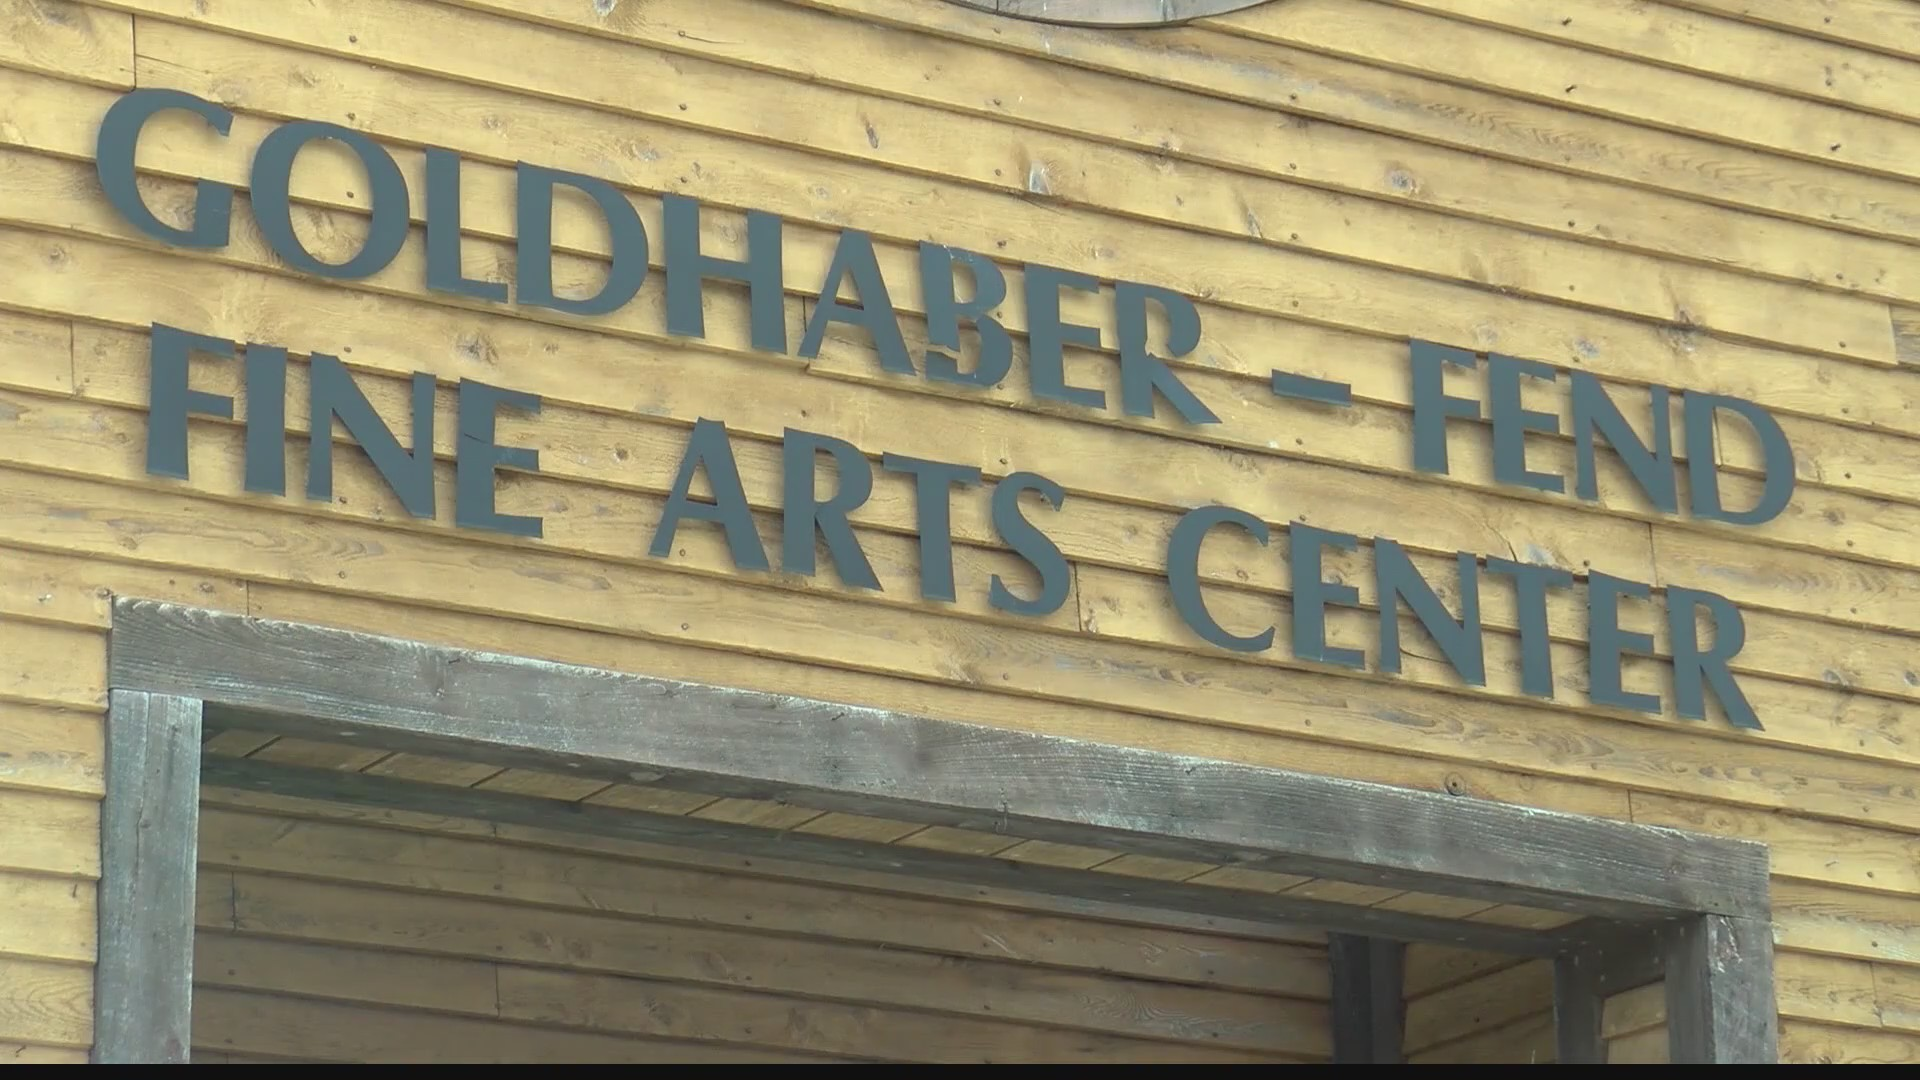 Arts_center_launches_annual_fund_drive_0_20190528234542